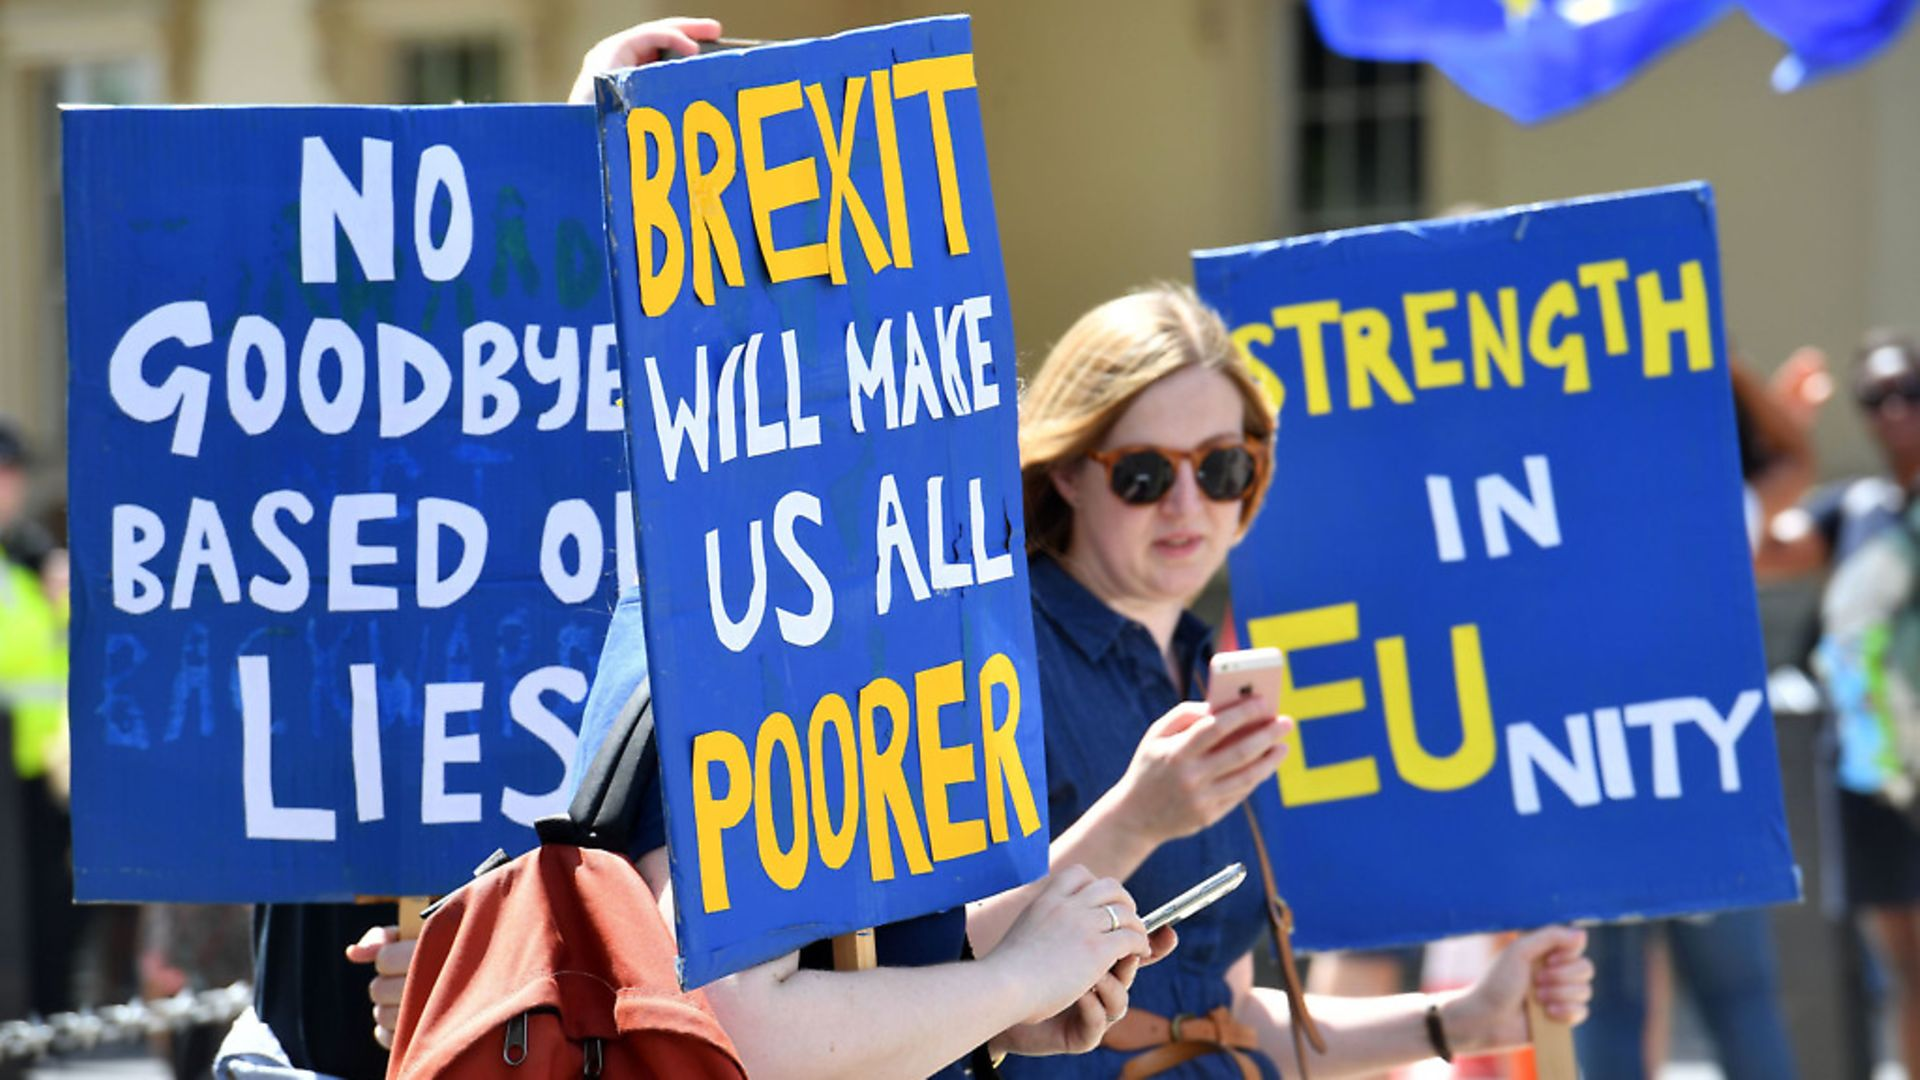 Crowds gather on Pall Mall in central London, during the People's Vote march for a second EU referendum.  Photo: PA. - Credit: PA Wire/PA Images